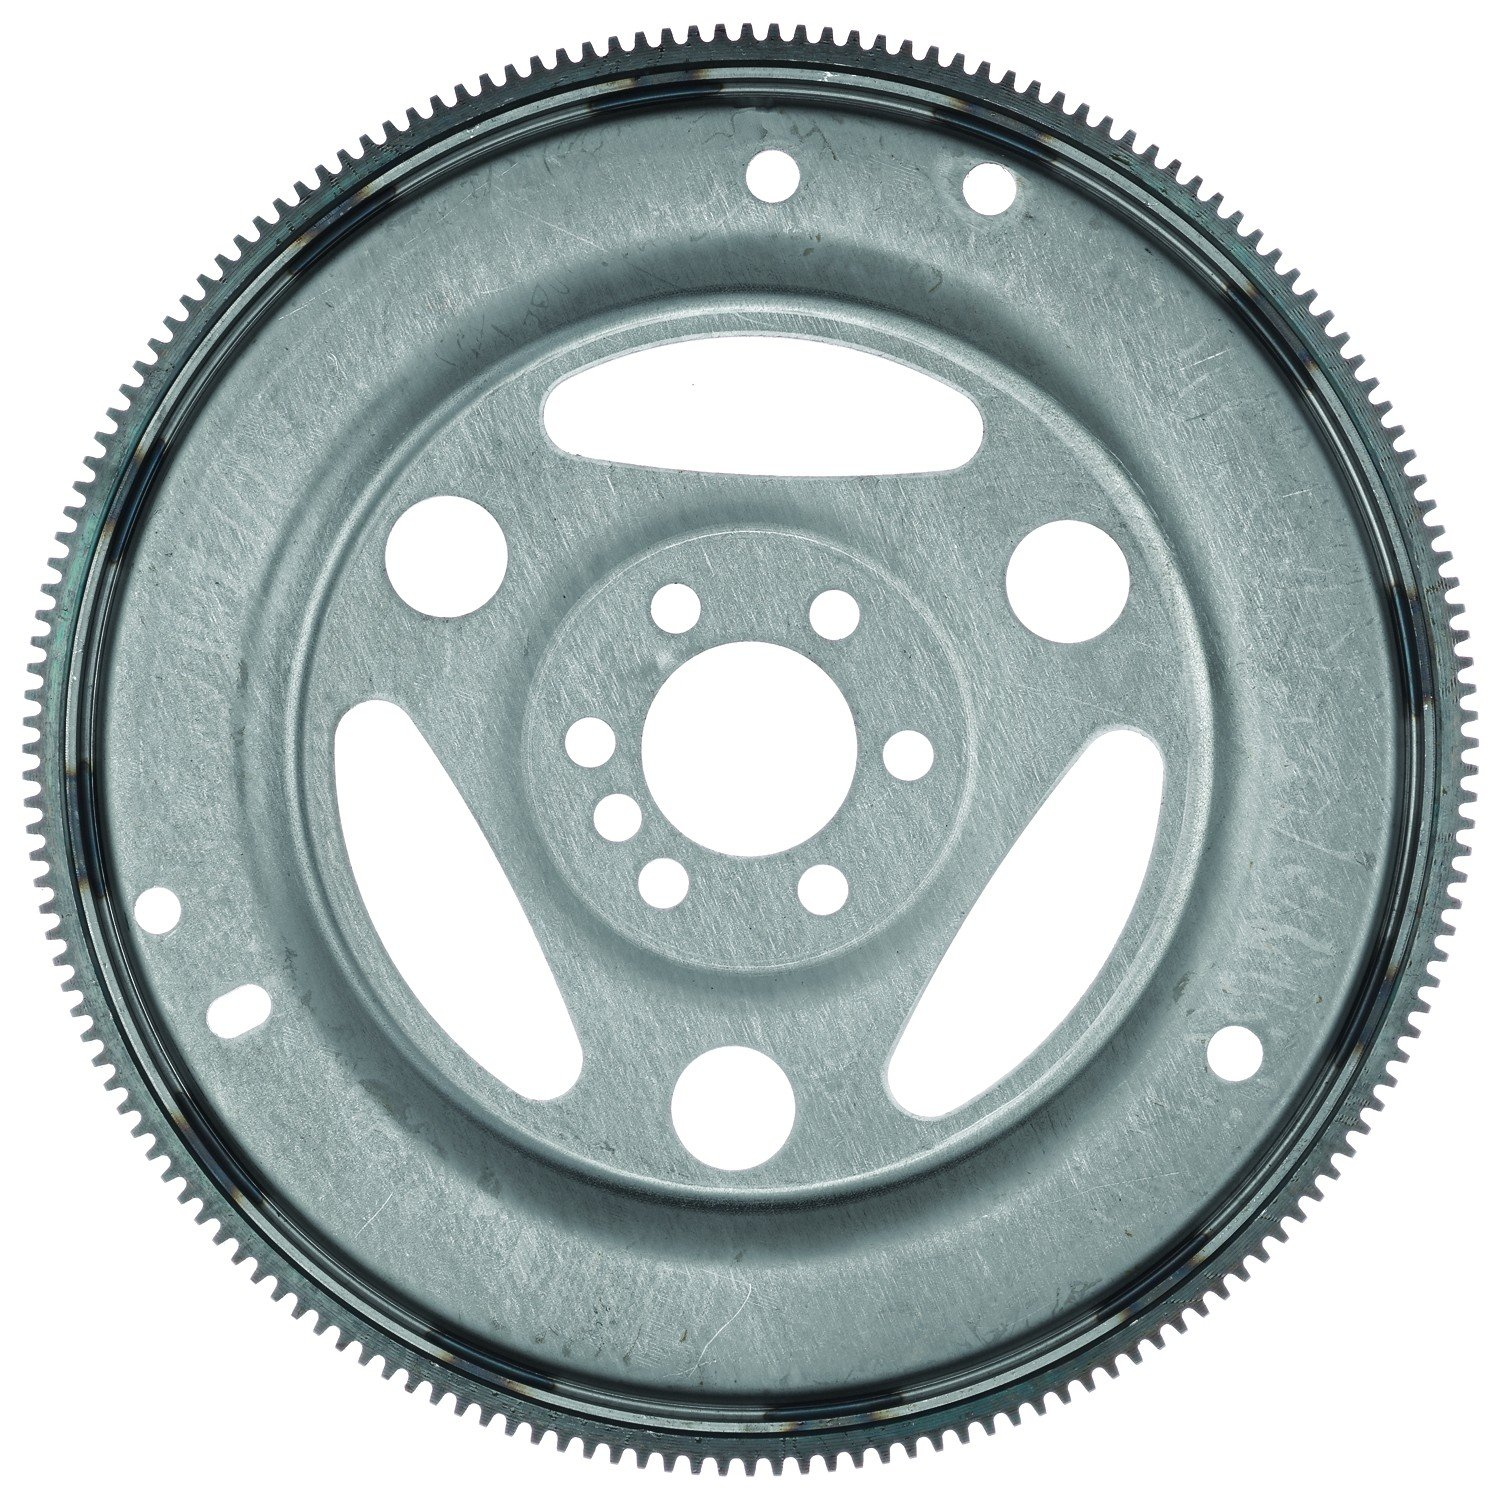 ATP Z-269 Automatic Transmission Flywheel Flex-Plate